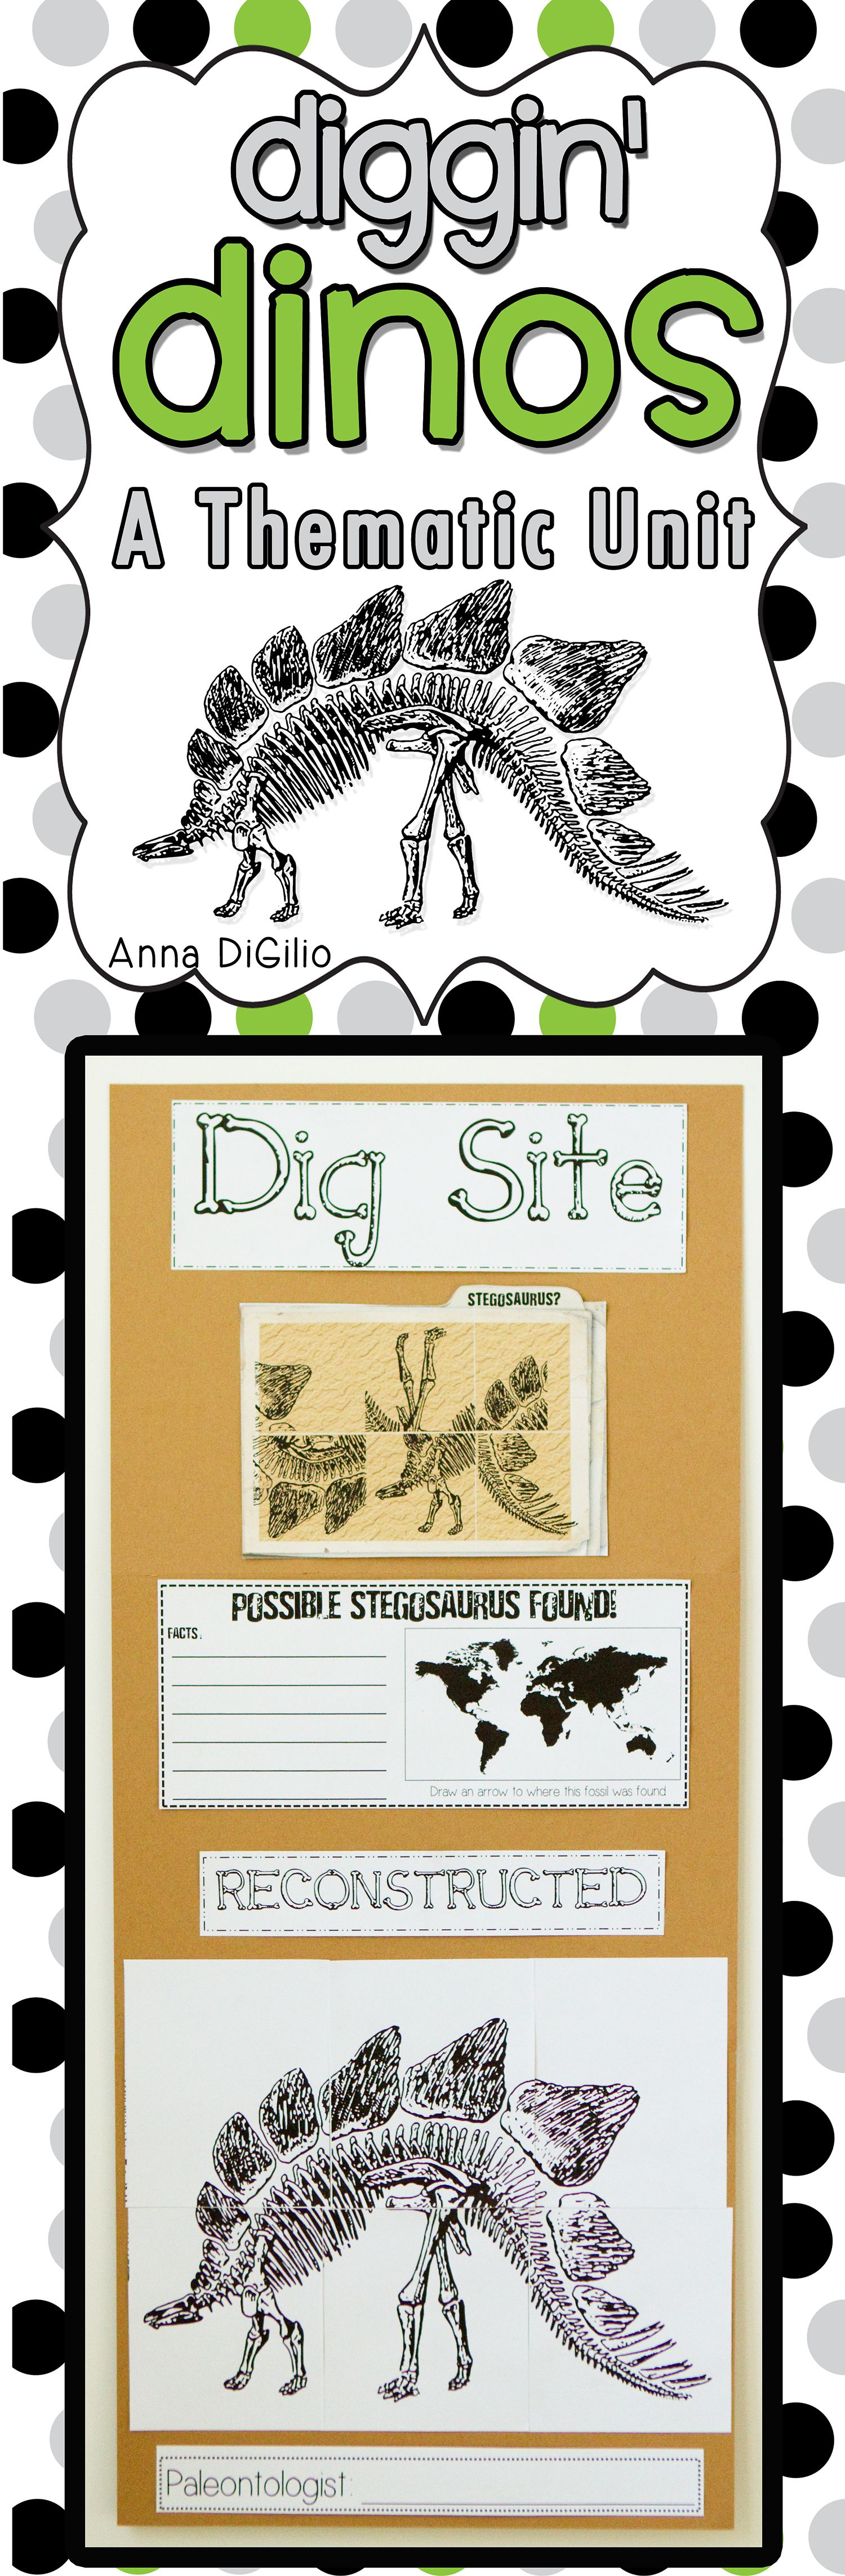 Get Ready To Dig Into Dinosaurs This Dino Mite Unit Is Jam Packed With Fun Creative And